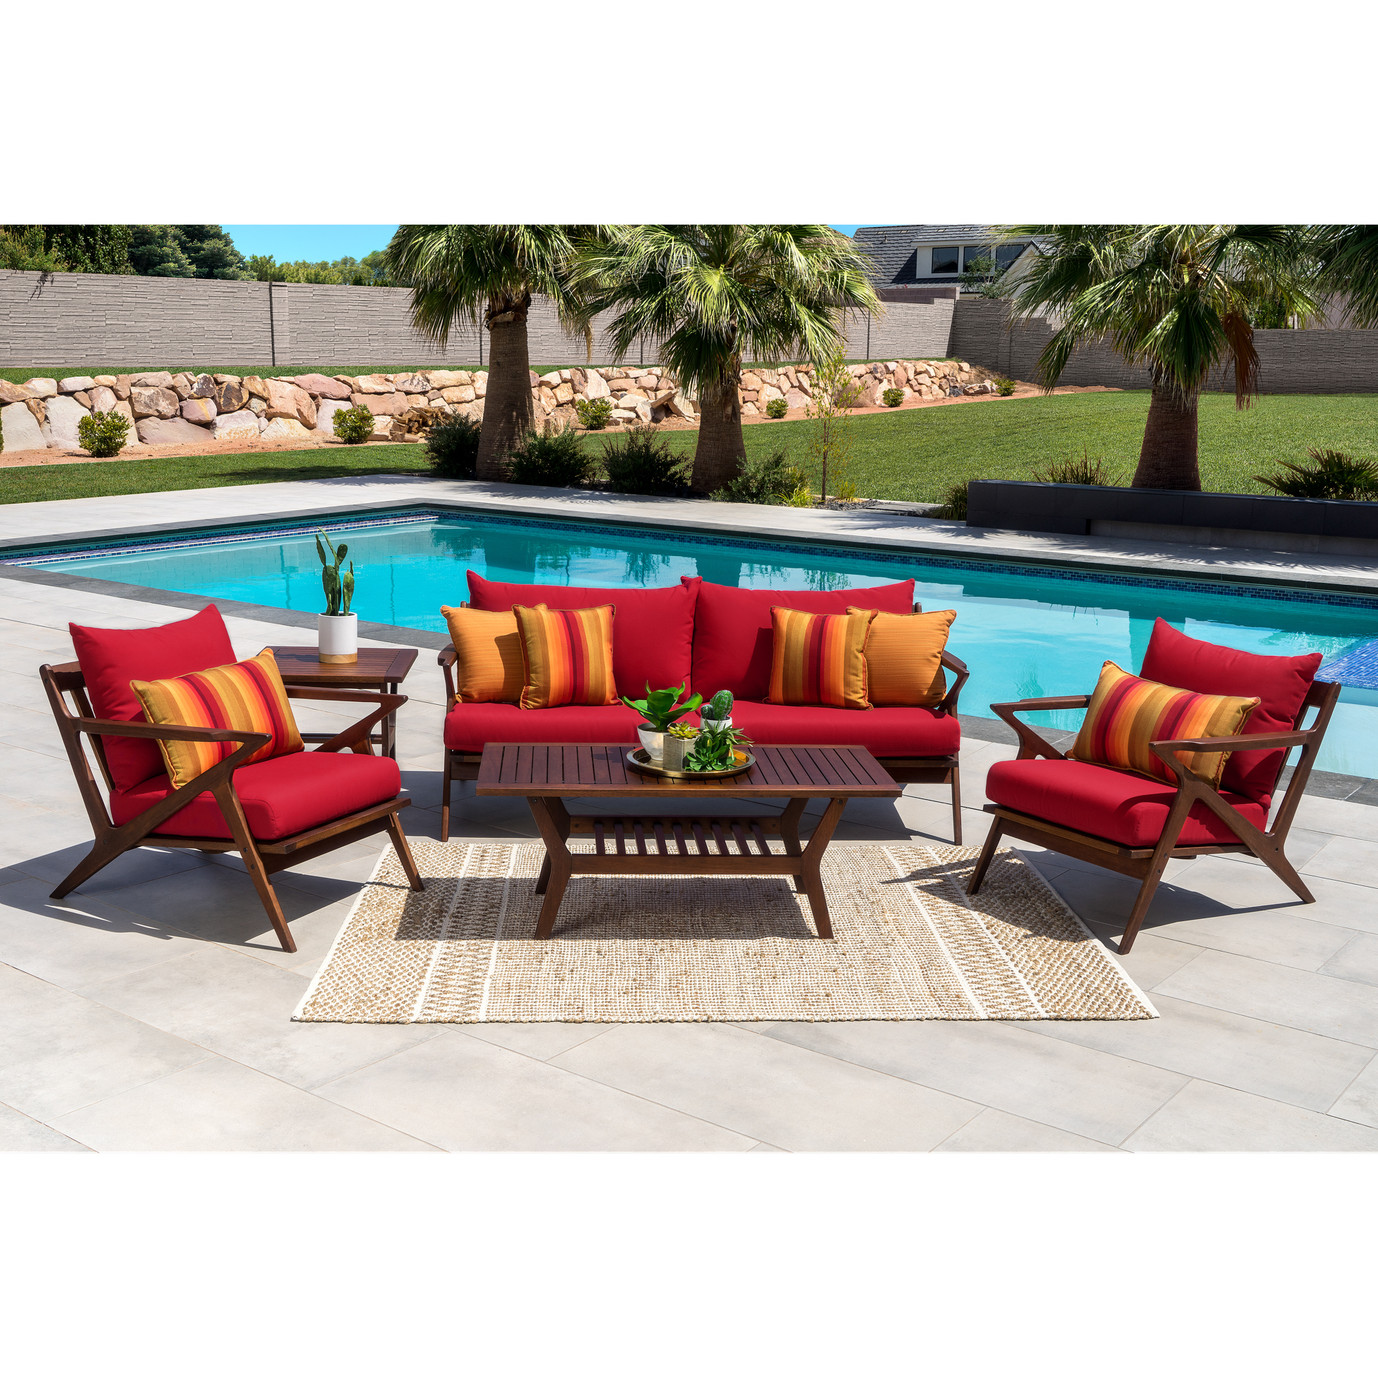 Vaughn 5pc Seating Set - Sunset Red